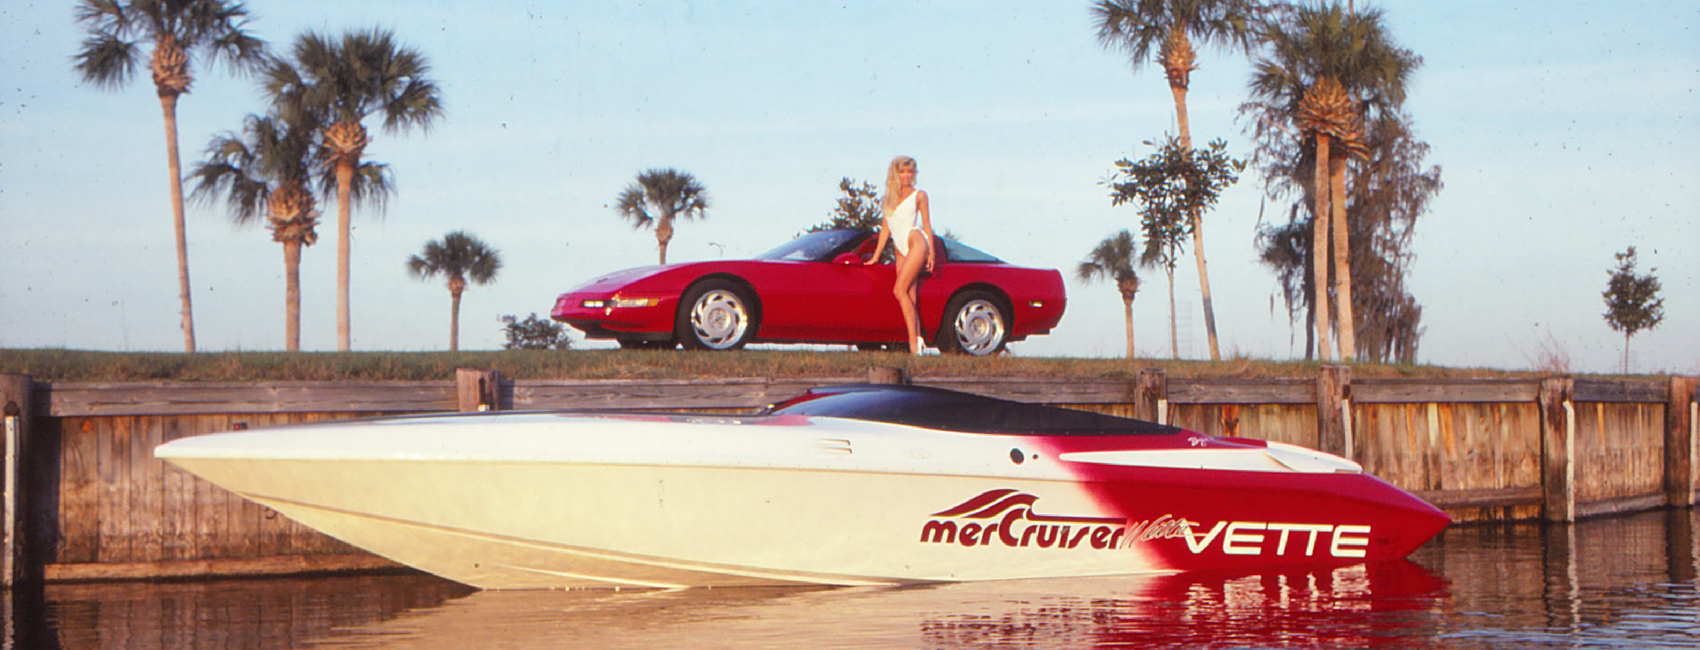 A model stands next to a red Corvette surrounded by palm trees. In the foreground a red and white speed boat is floating in the water.